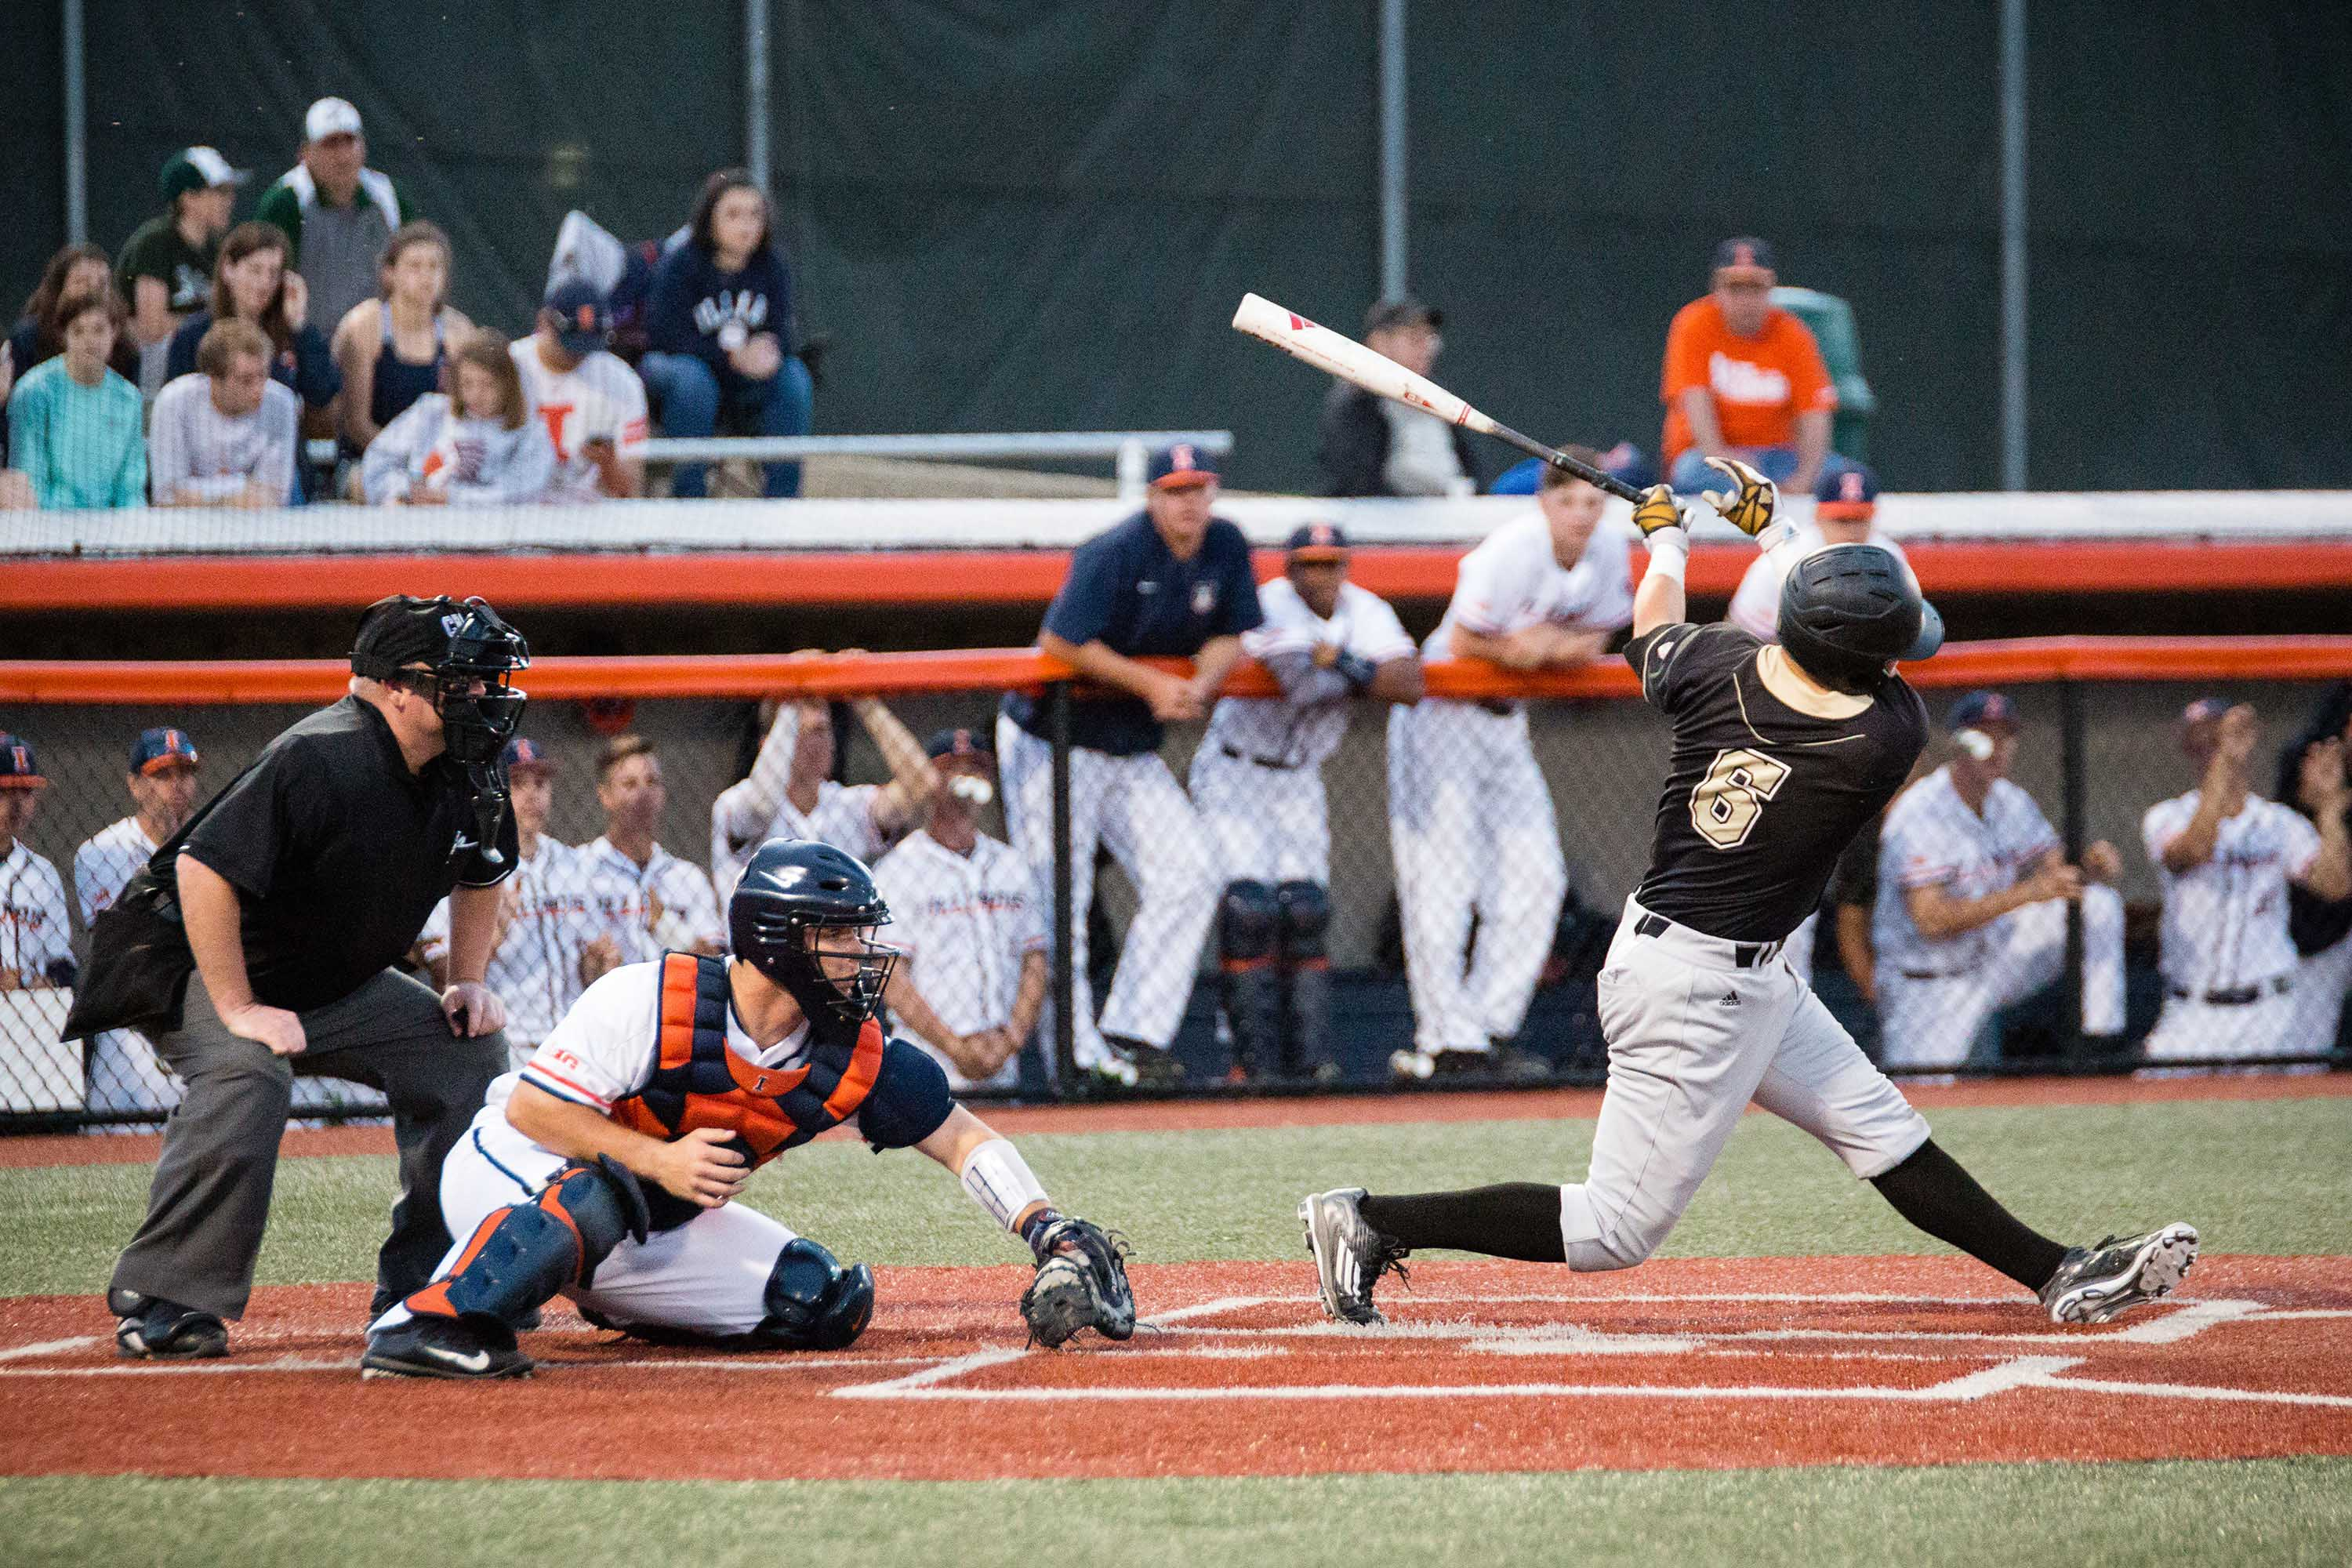 Illinois catcher Mark Skonieczny catches a third strike against Western Michigan at Illinois Field on Tuesday. Illinois travels to Purdue this weekend to inch closer to a .500 record.